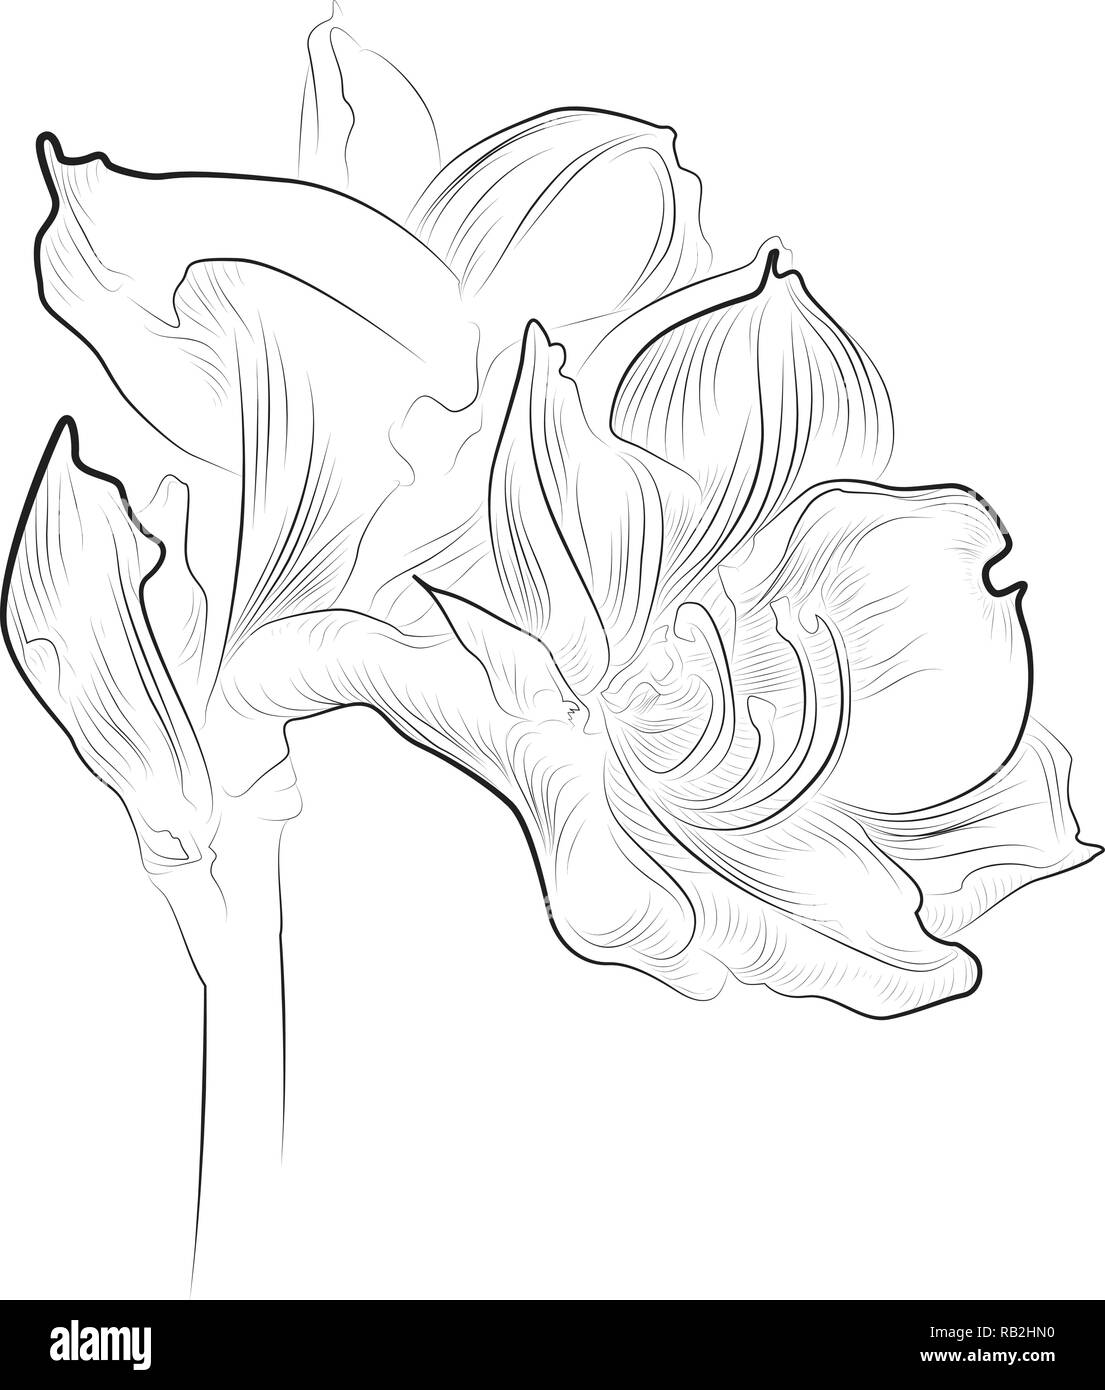 Delicate amaryllis blossom line drawing in black and white - Stock Vector